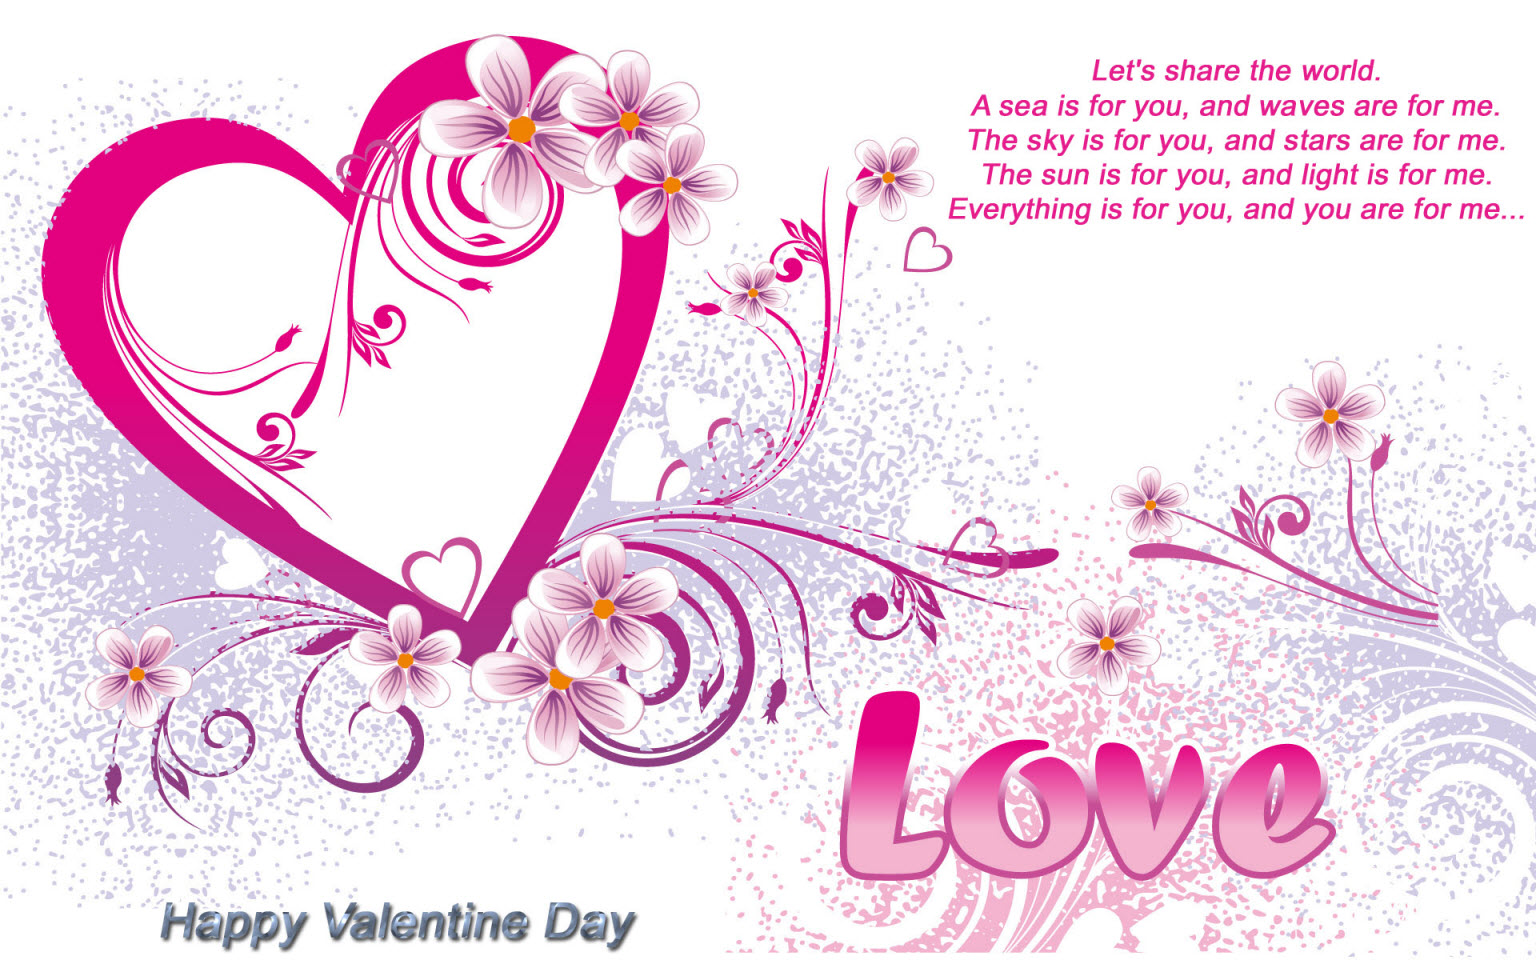 Happy Valentines Day 2017 Wishes Quotes Images – Valentines Day Cards and Quotes